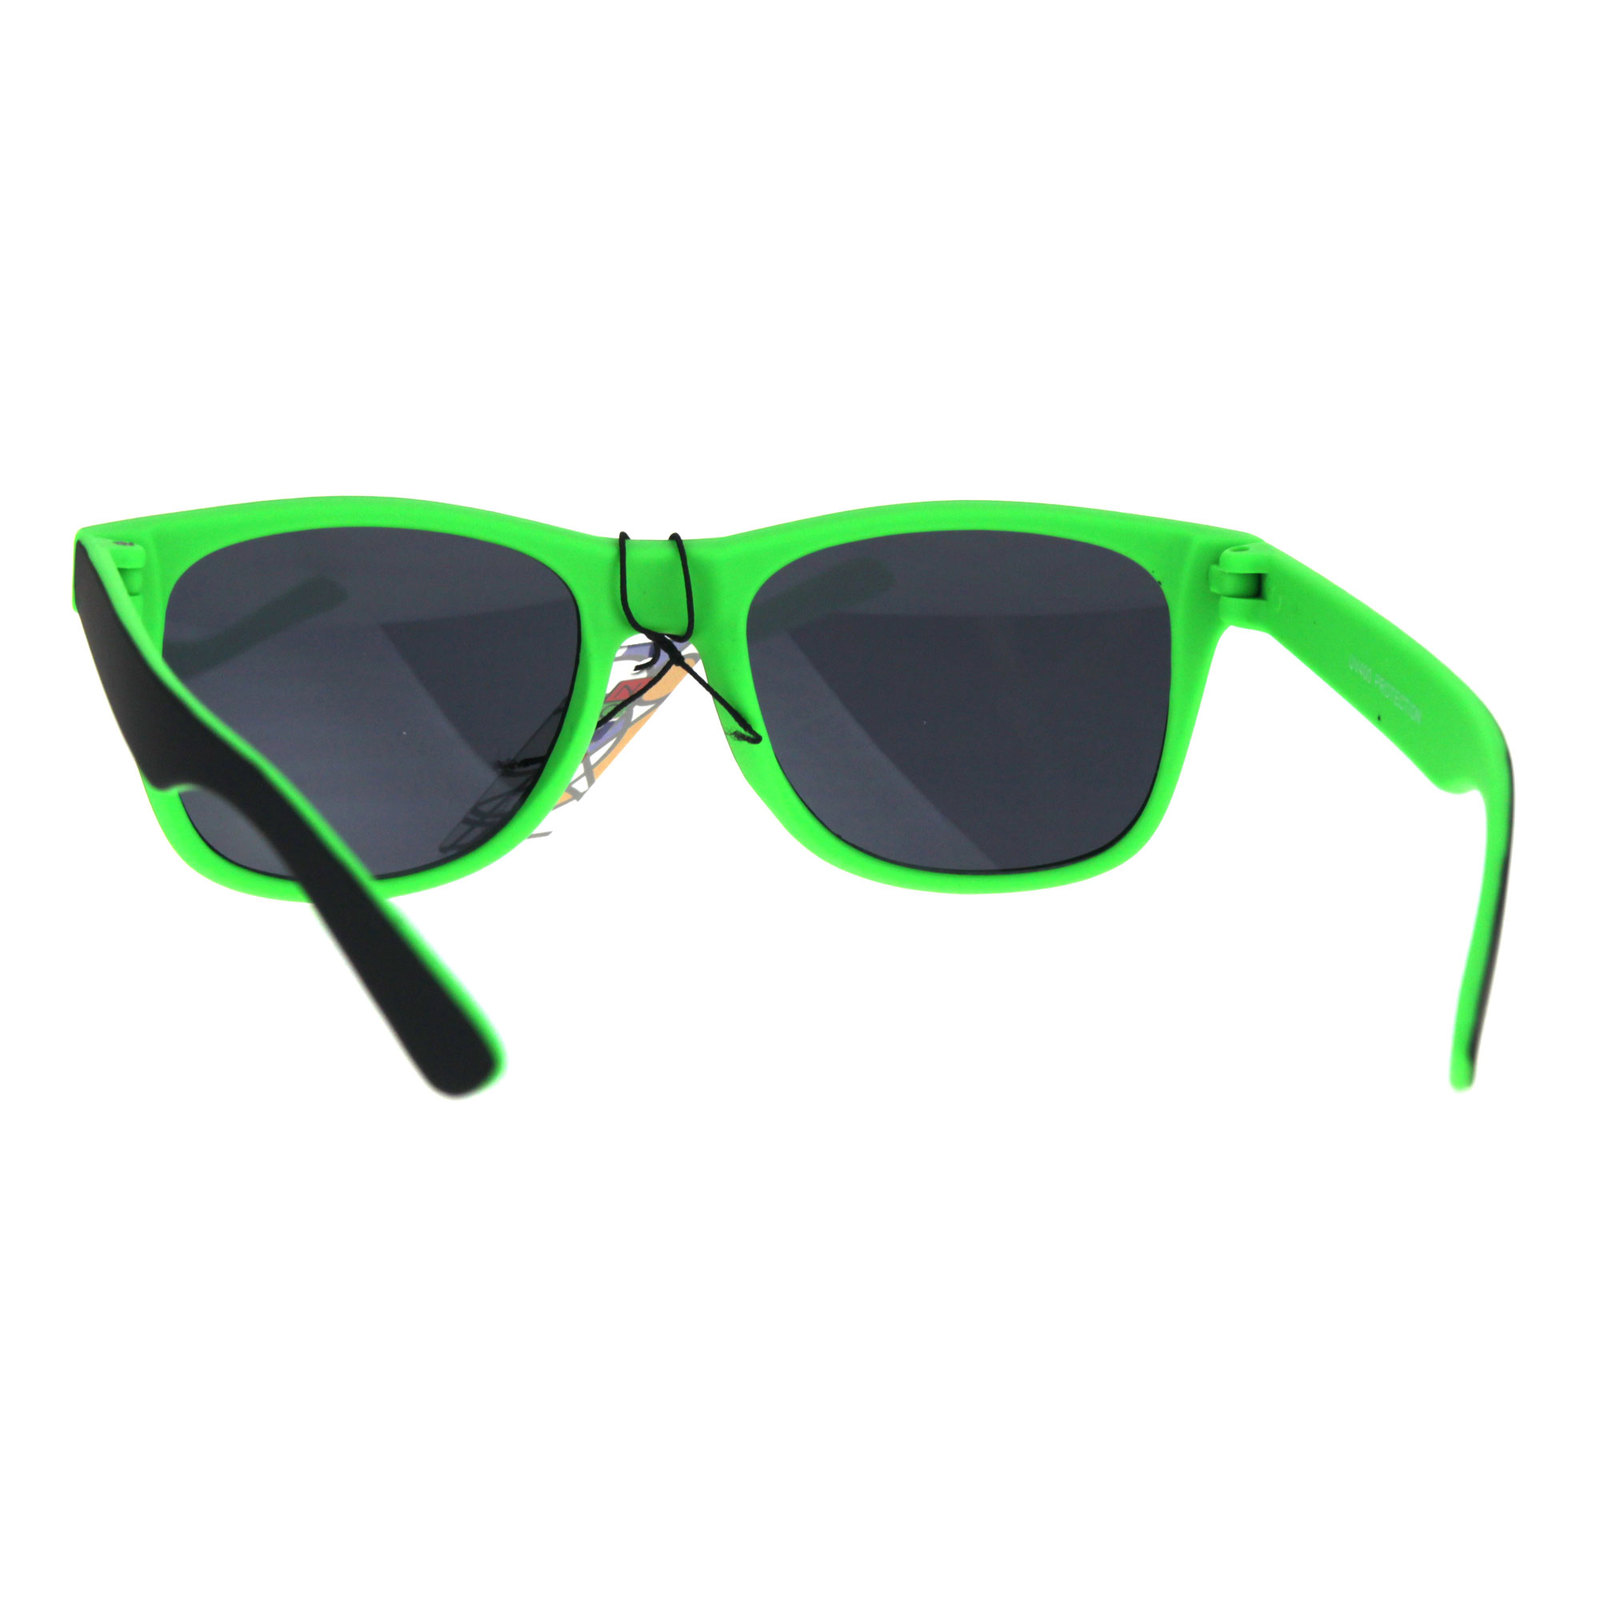 Kids Child Size Classic Pop Color Matte 2 Tone Horn Rim Sunglasses